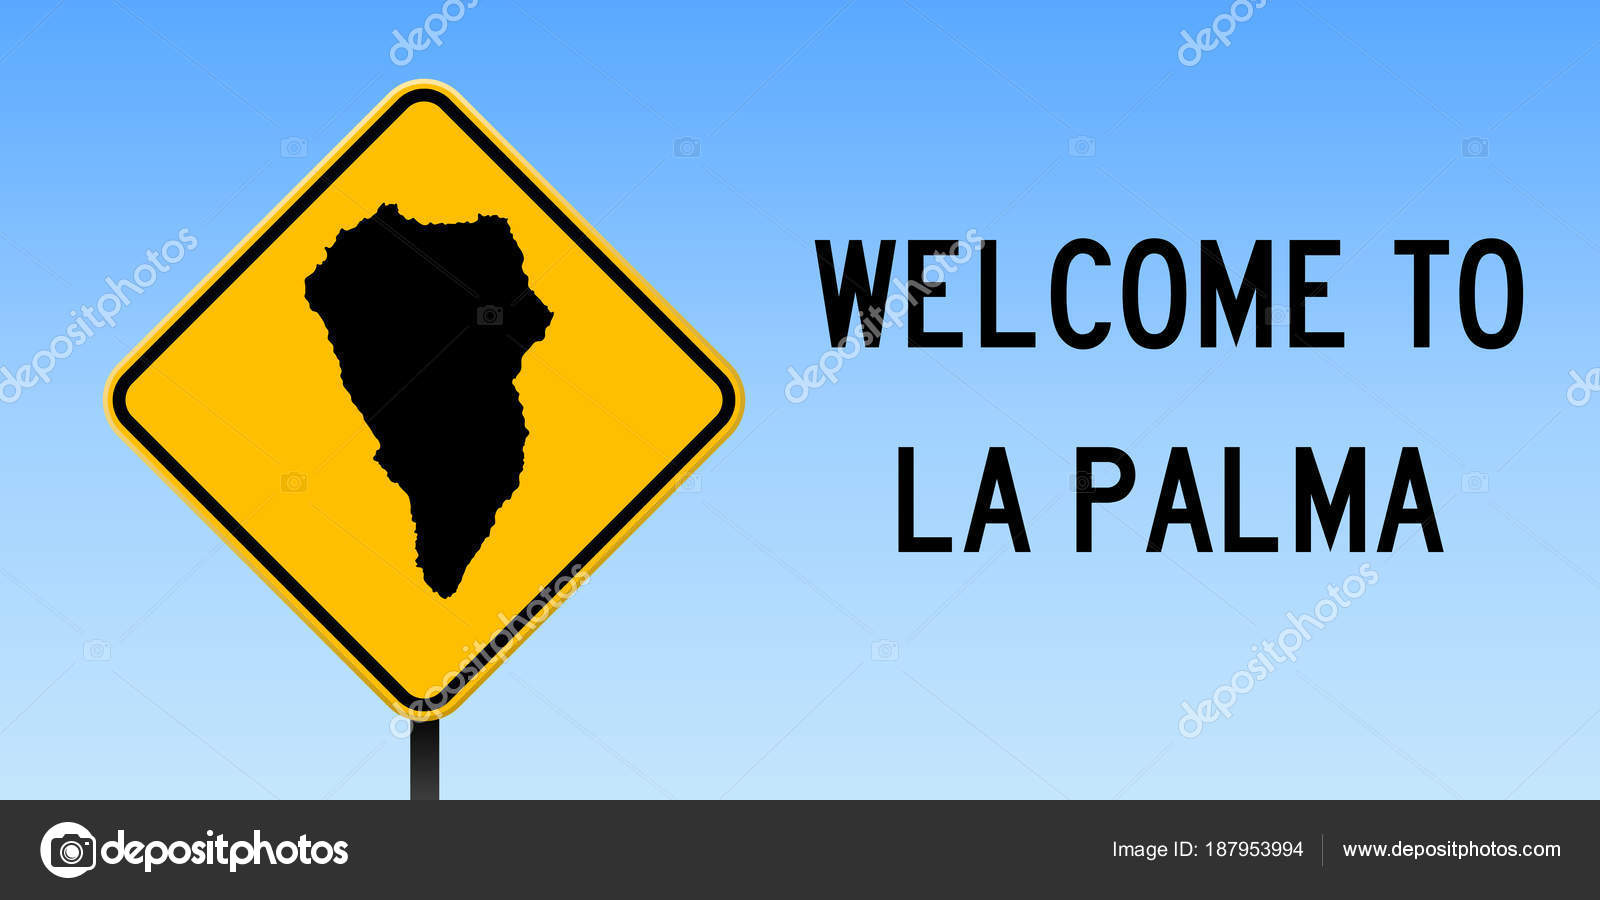 La Palma map on road sign Wide poster with La Palma island map on